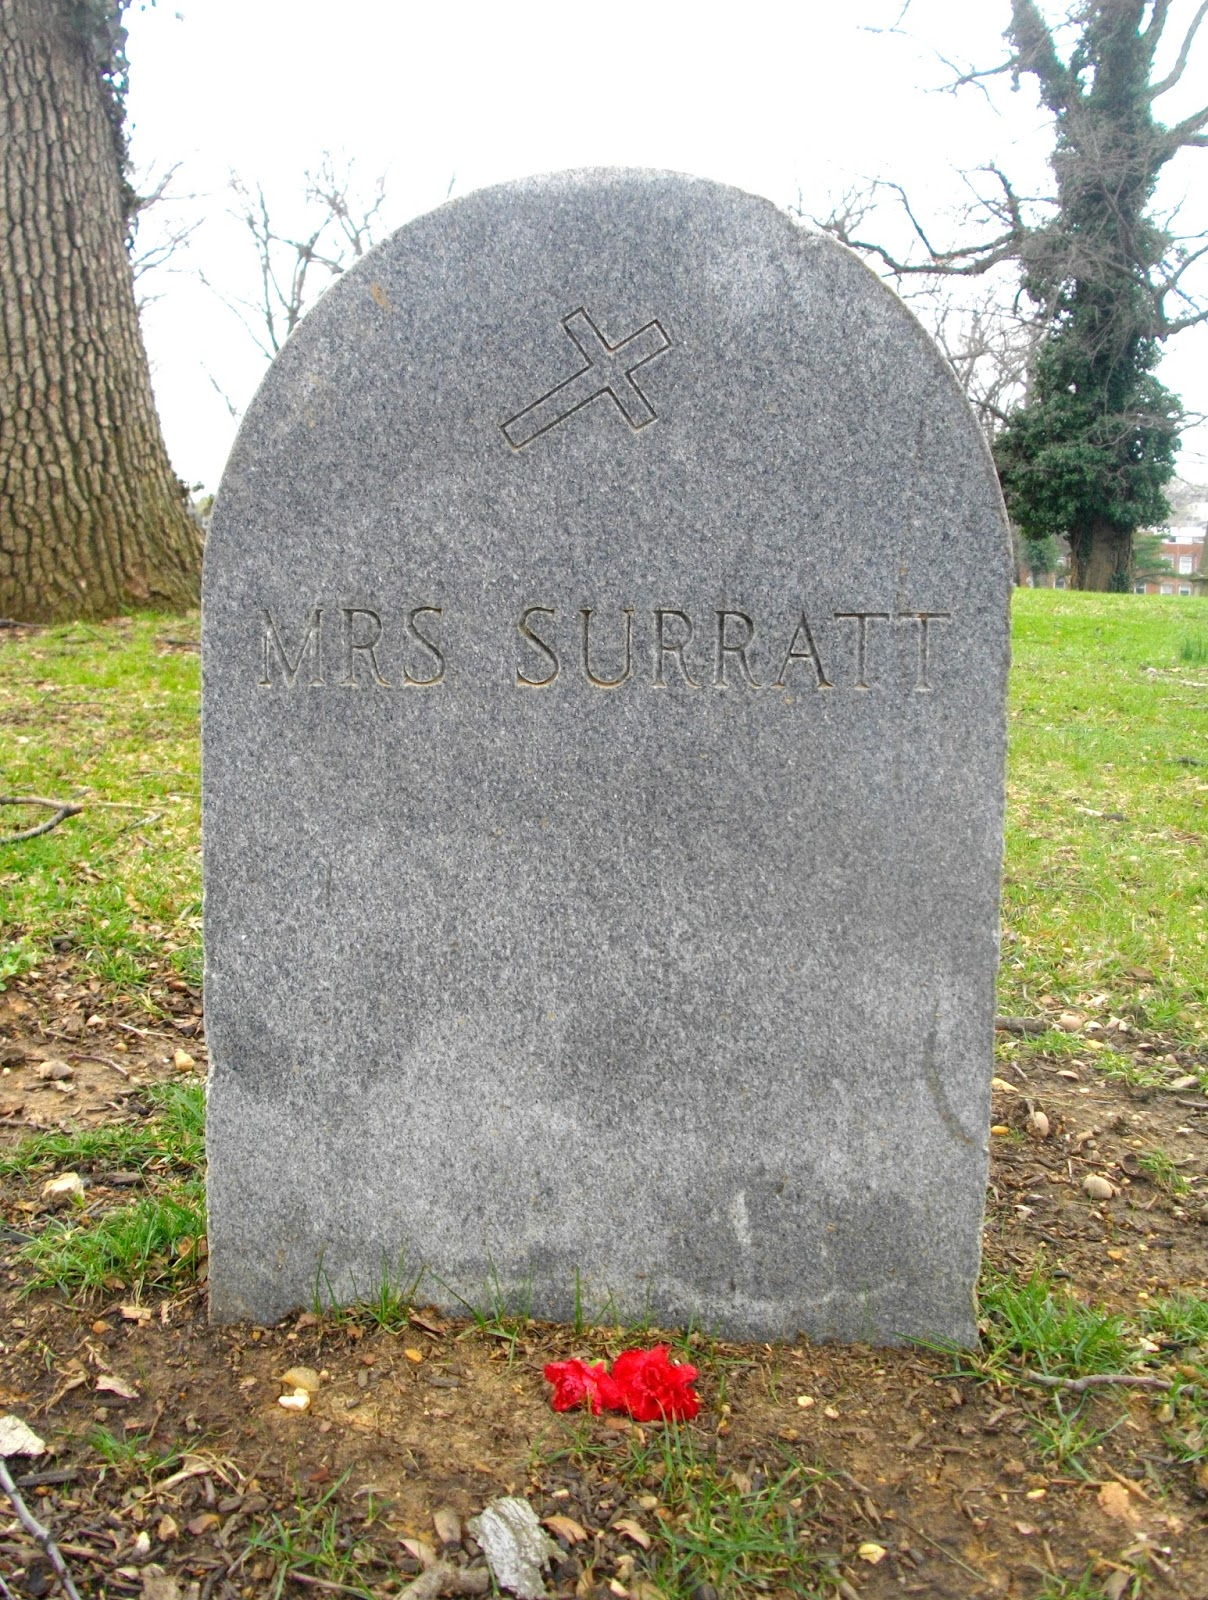 was mary surratt guilty